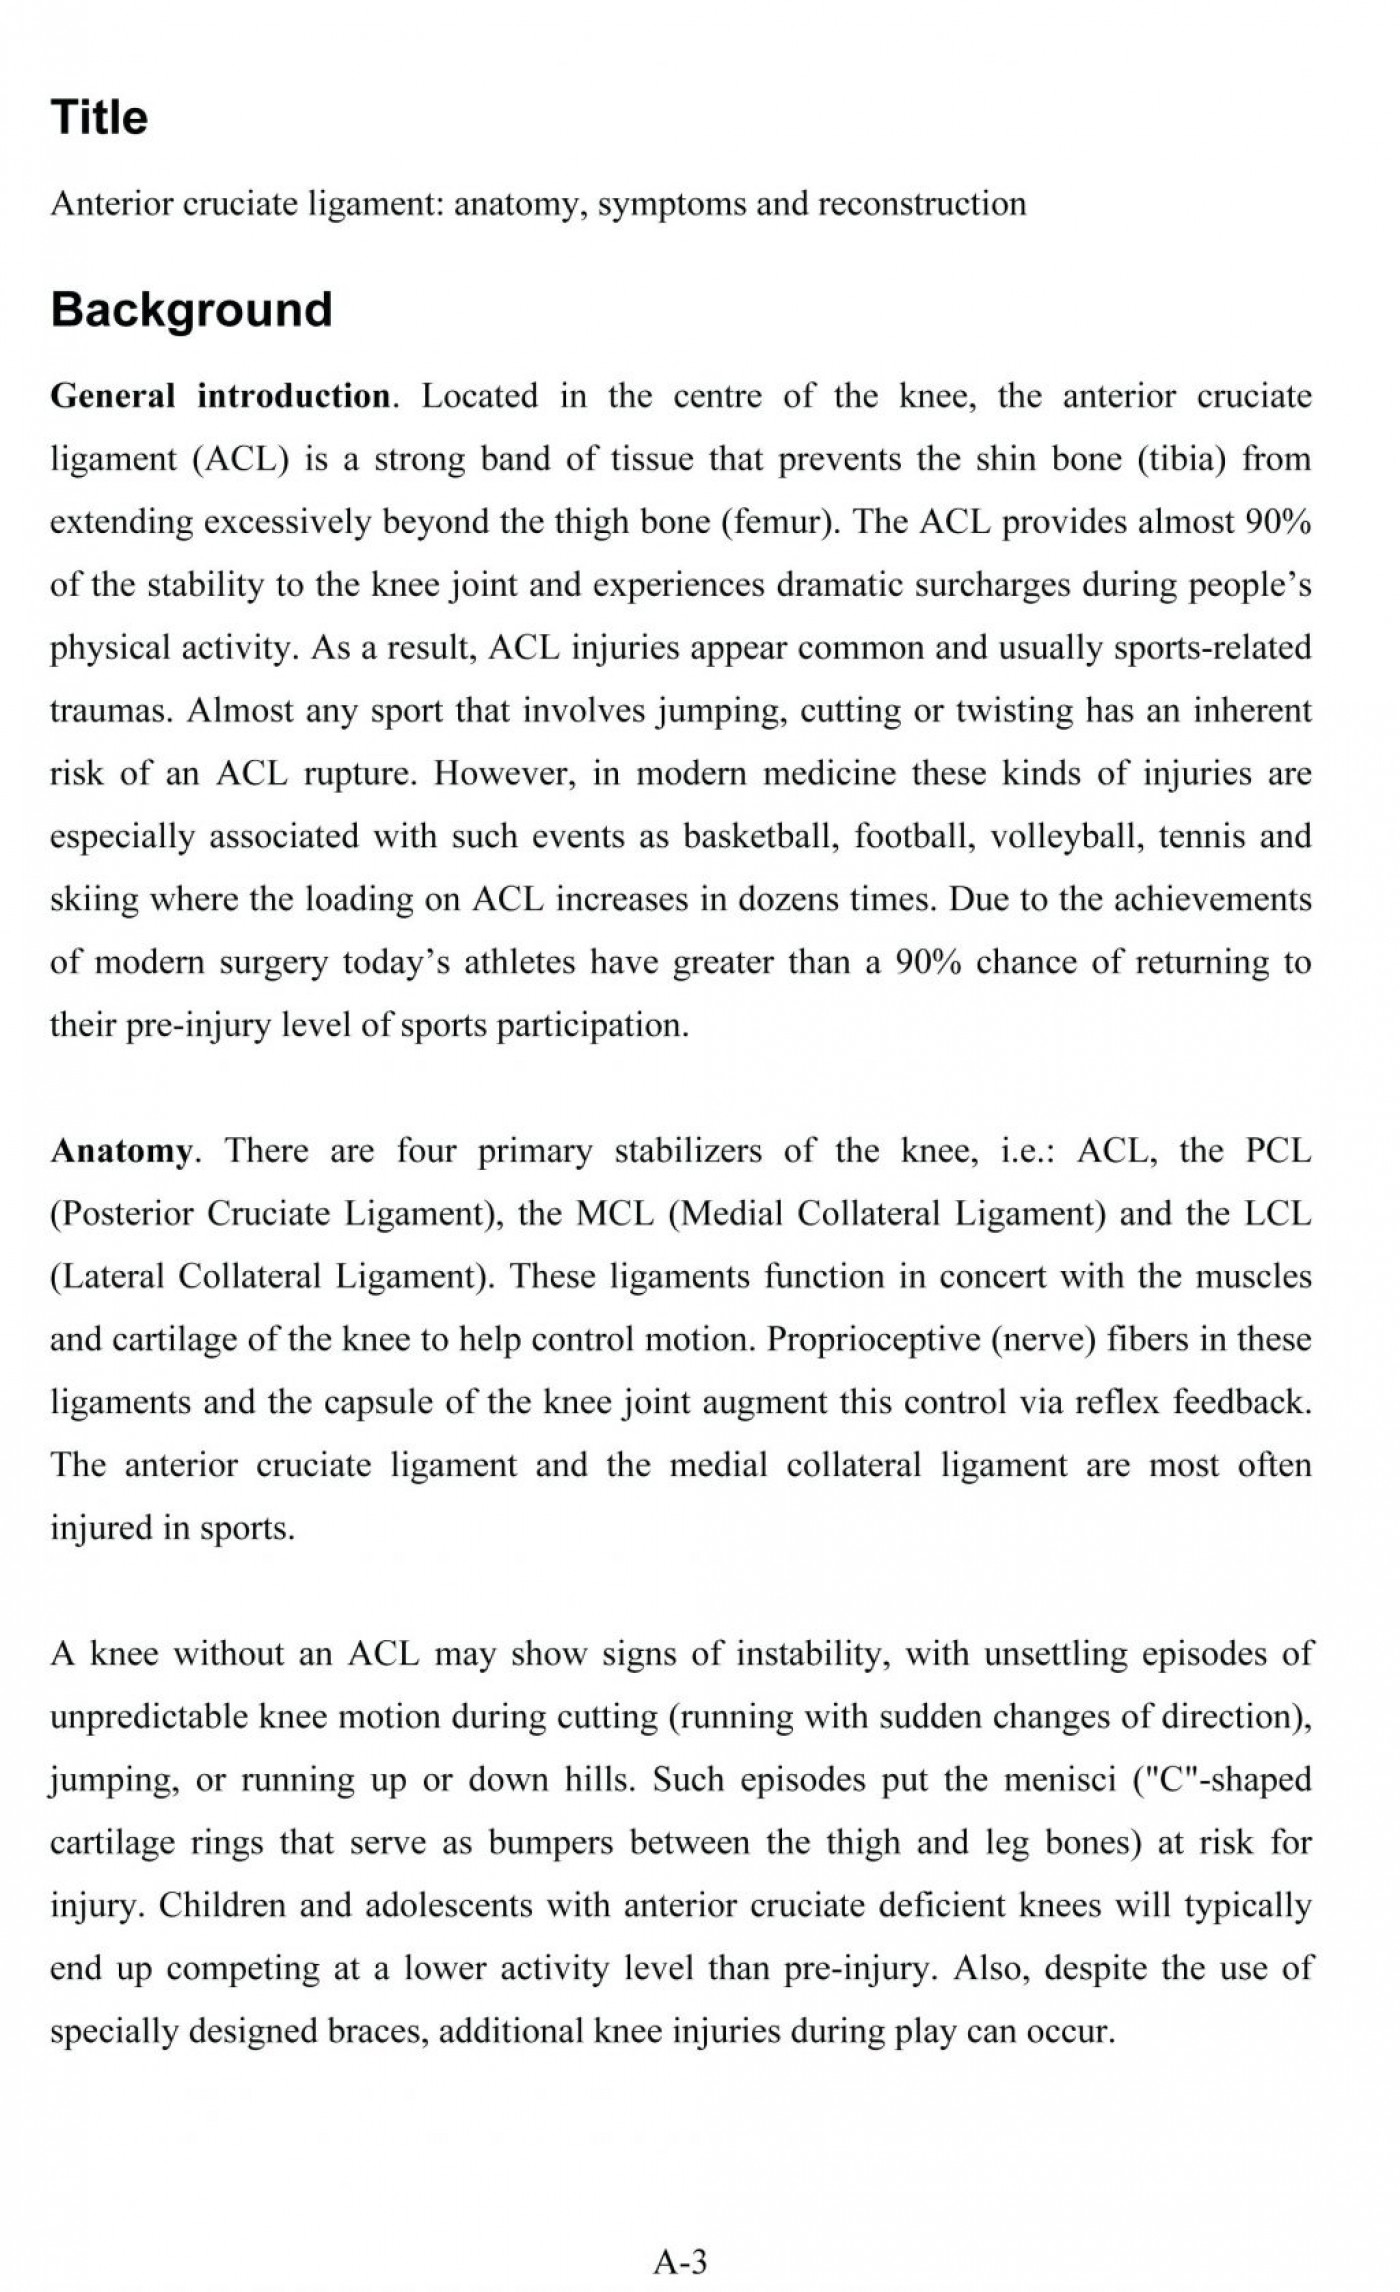 019 20writing Research Report Sample Essays Hub Paper Introduction20le Mla Format Apa20 1024x1677 Examples Exceptional Pdf Apa Example Of Methodology Section Ieee .pdf 1400